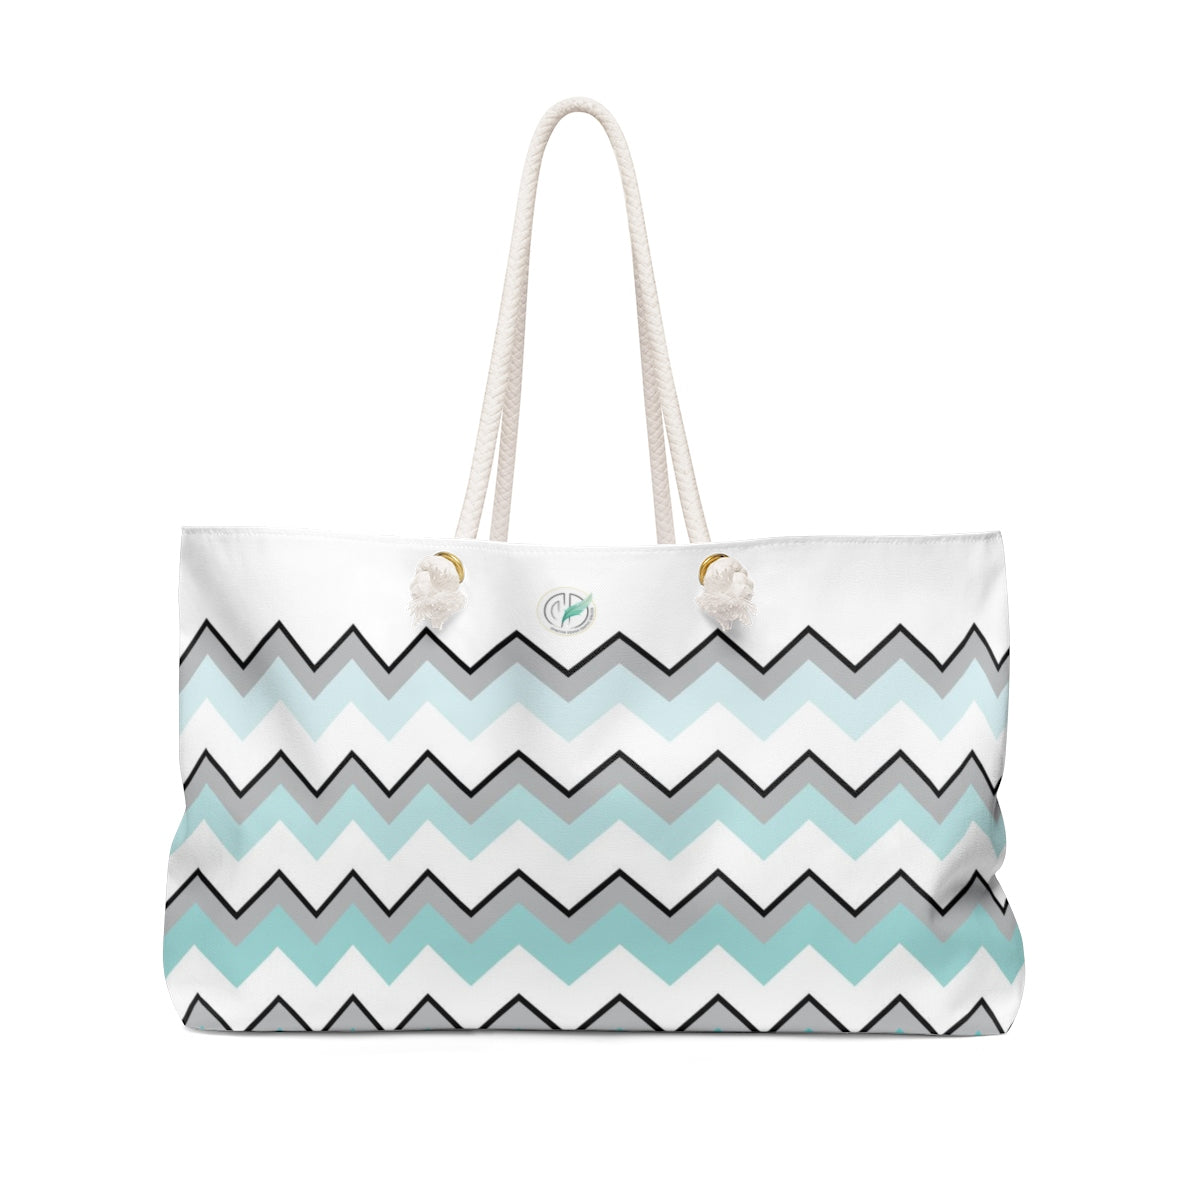 Copy of Ombre Teal Chevron Weekender Bag